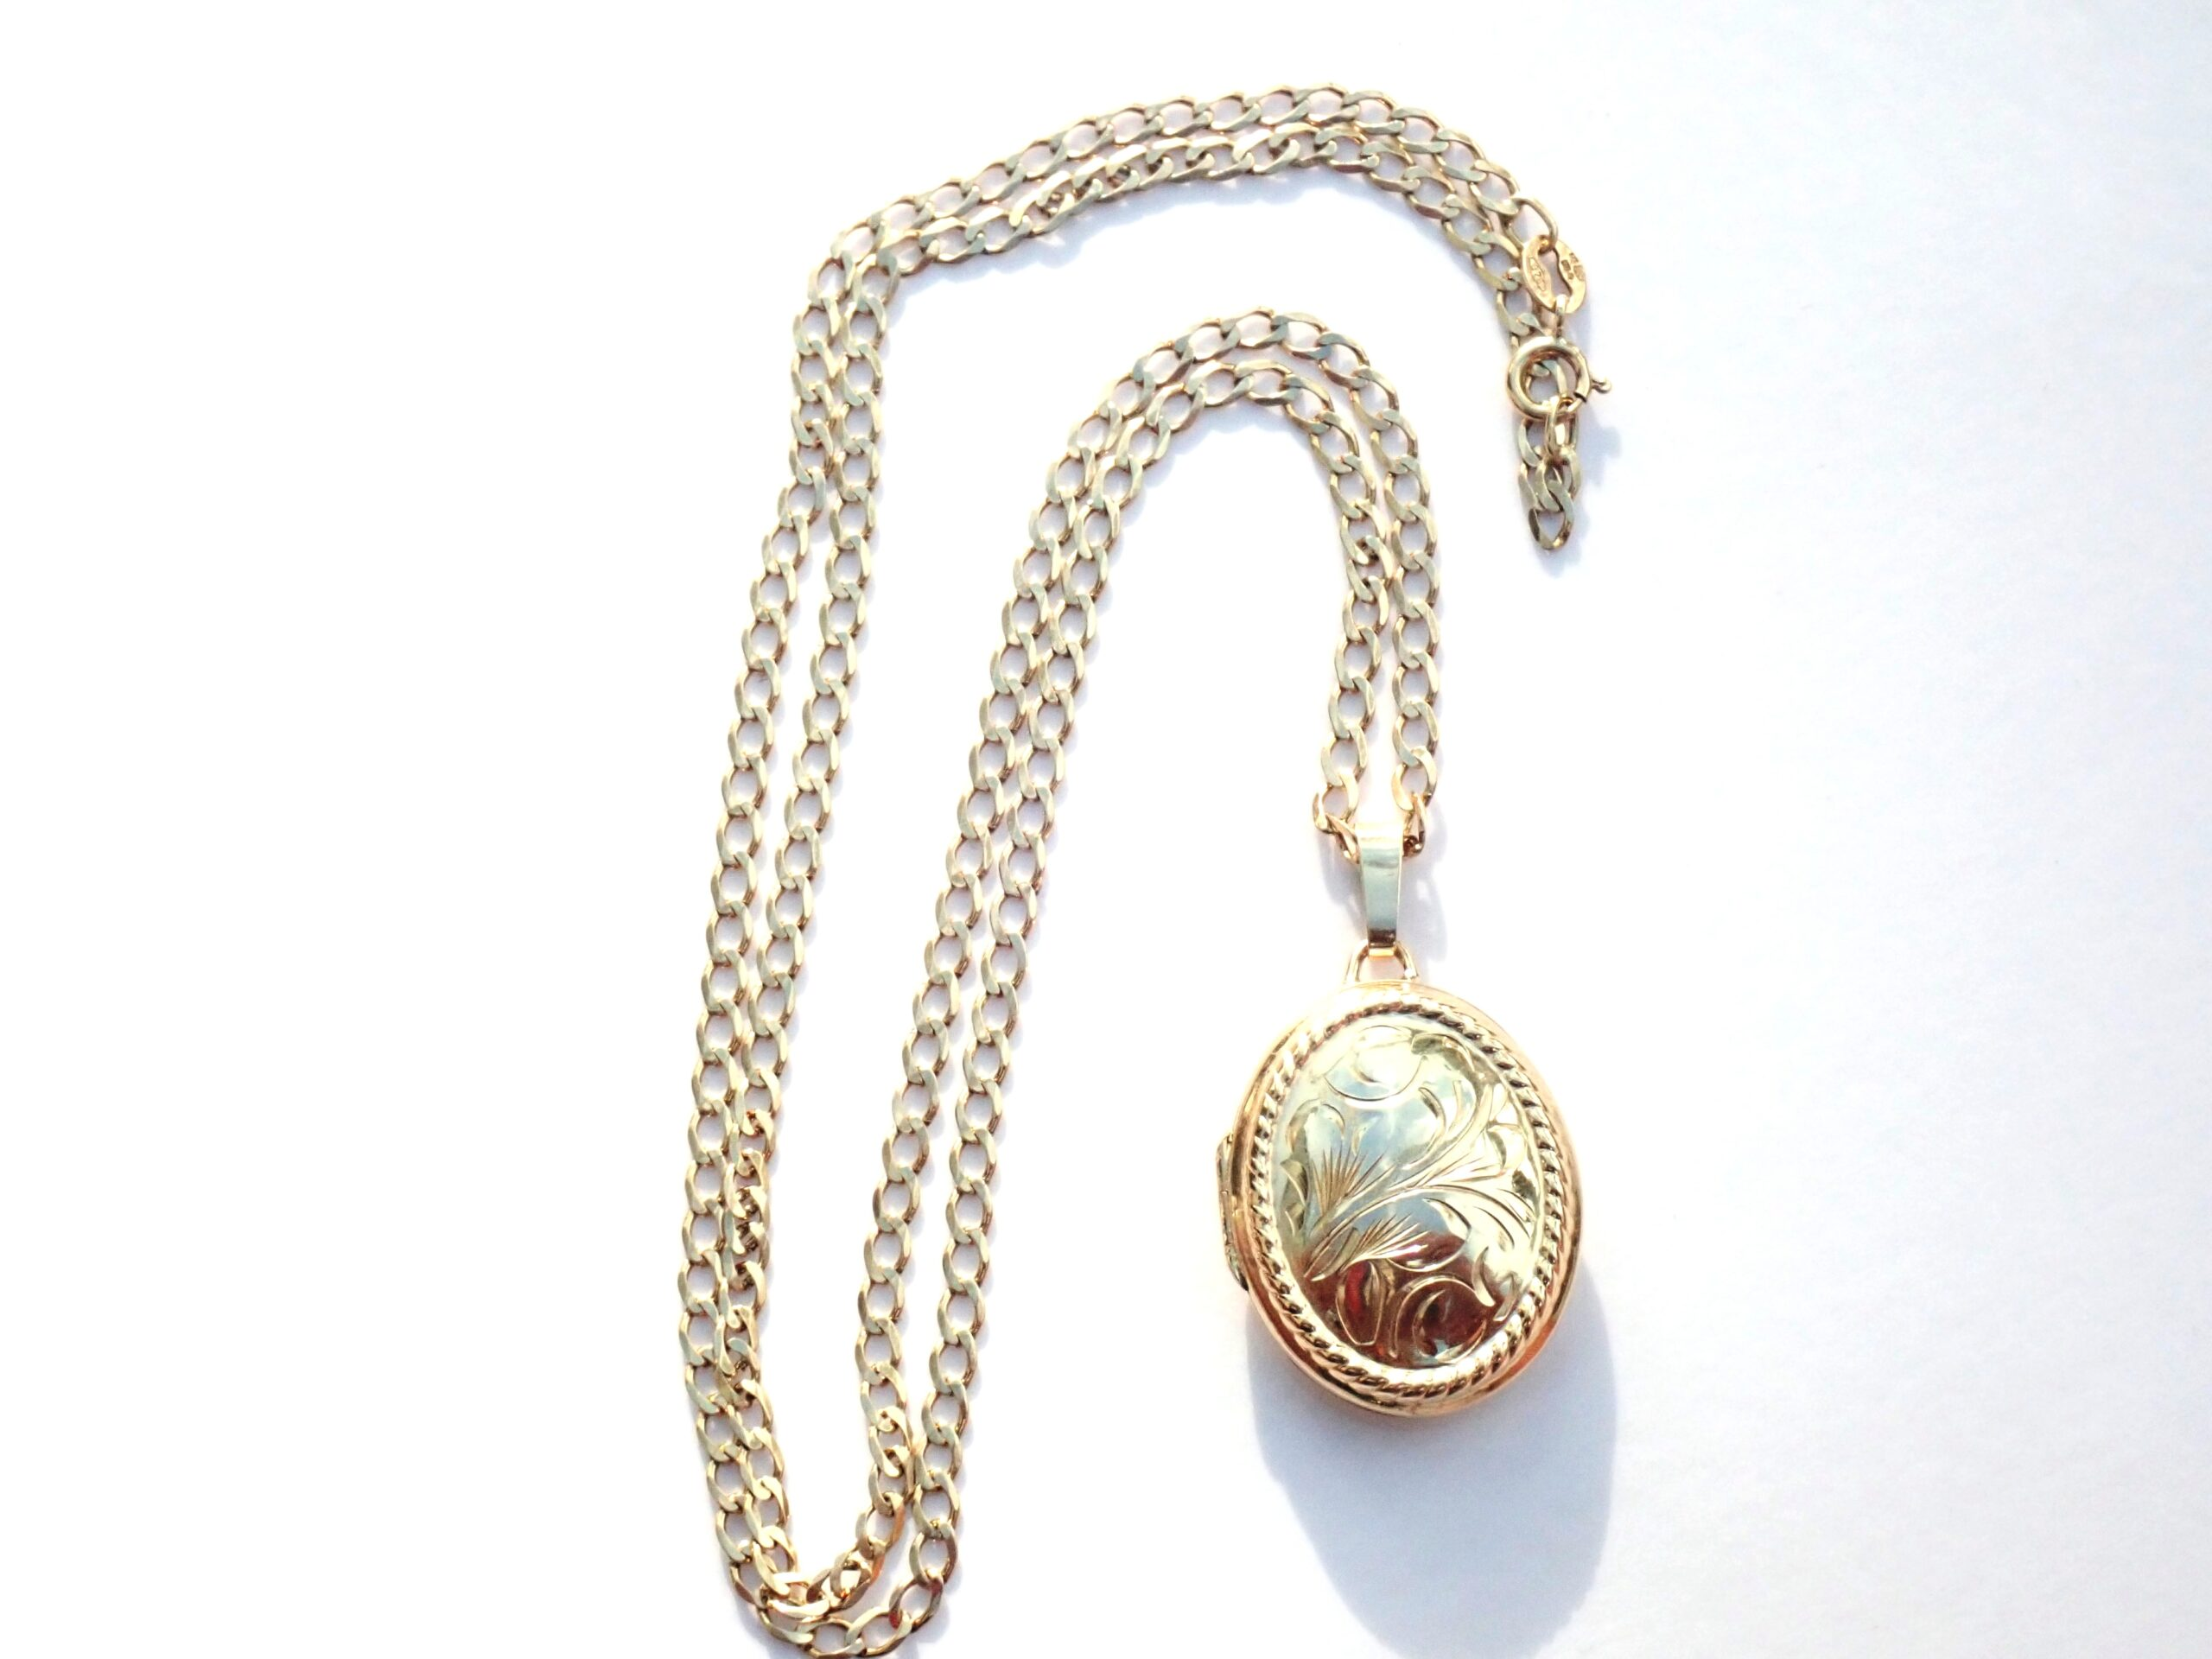 Solid 9K Yellow Gold Floral Patterned Oval Locket & Gold chain Necklace 4.5g #80